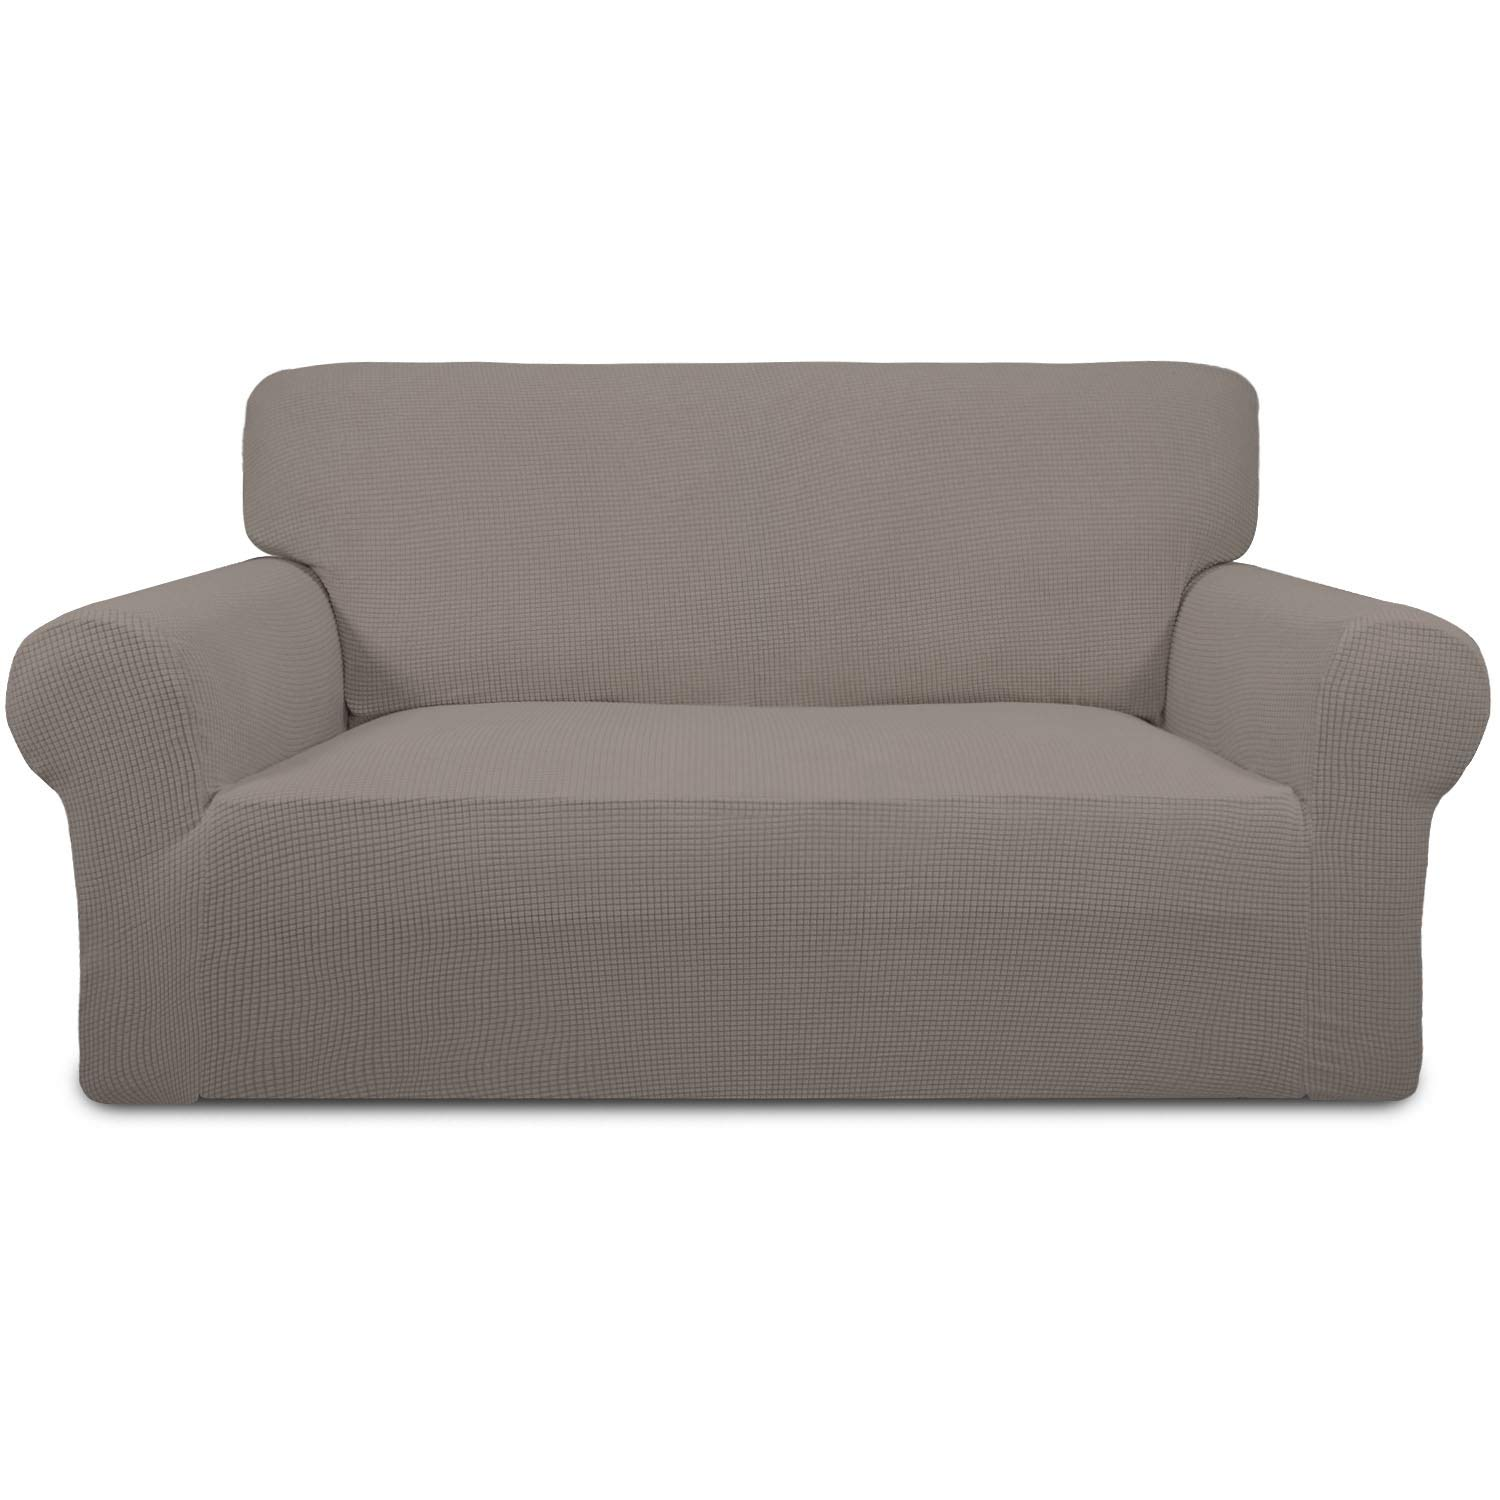 Easy-Going Stretch Sofa Slipcover 1-Piece Sofa Cover Furniture Protector Couch Soft with Elastic Bottom Anti-Slip Foam Spandex Jacquard Fabric Small Checks(Loveseat,Taupe)